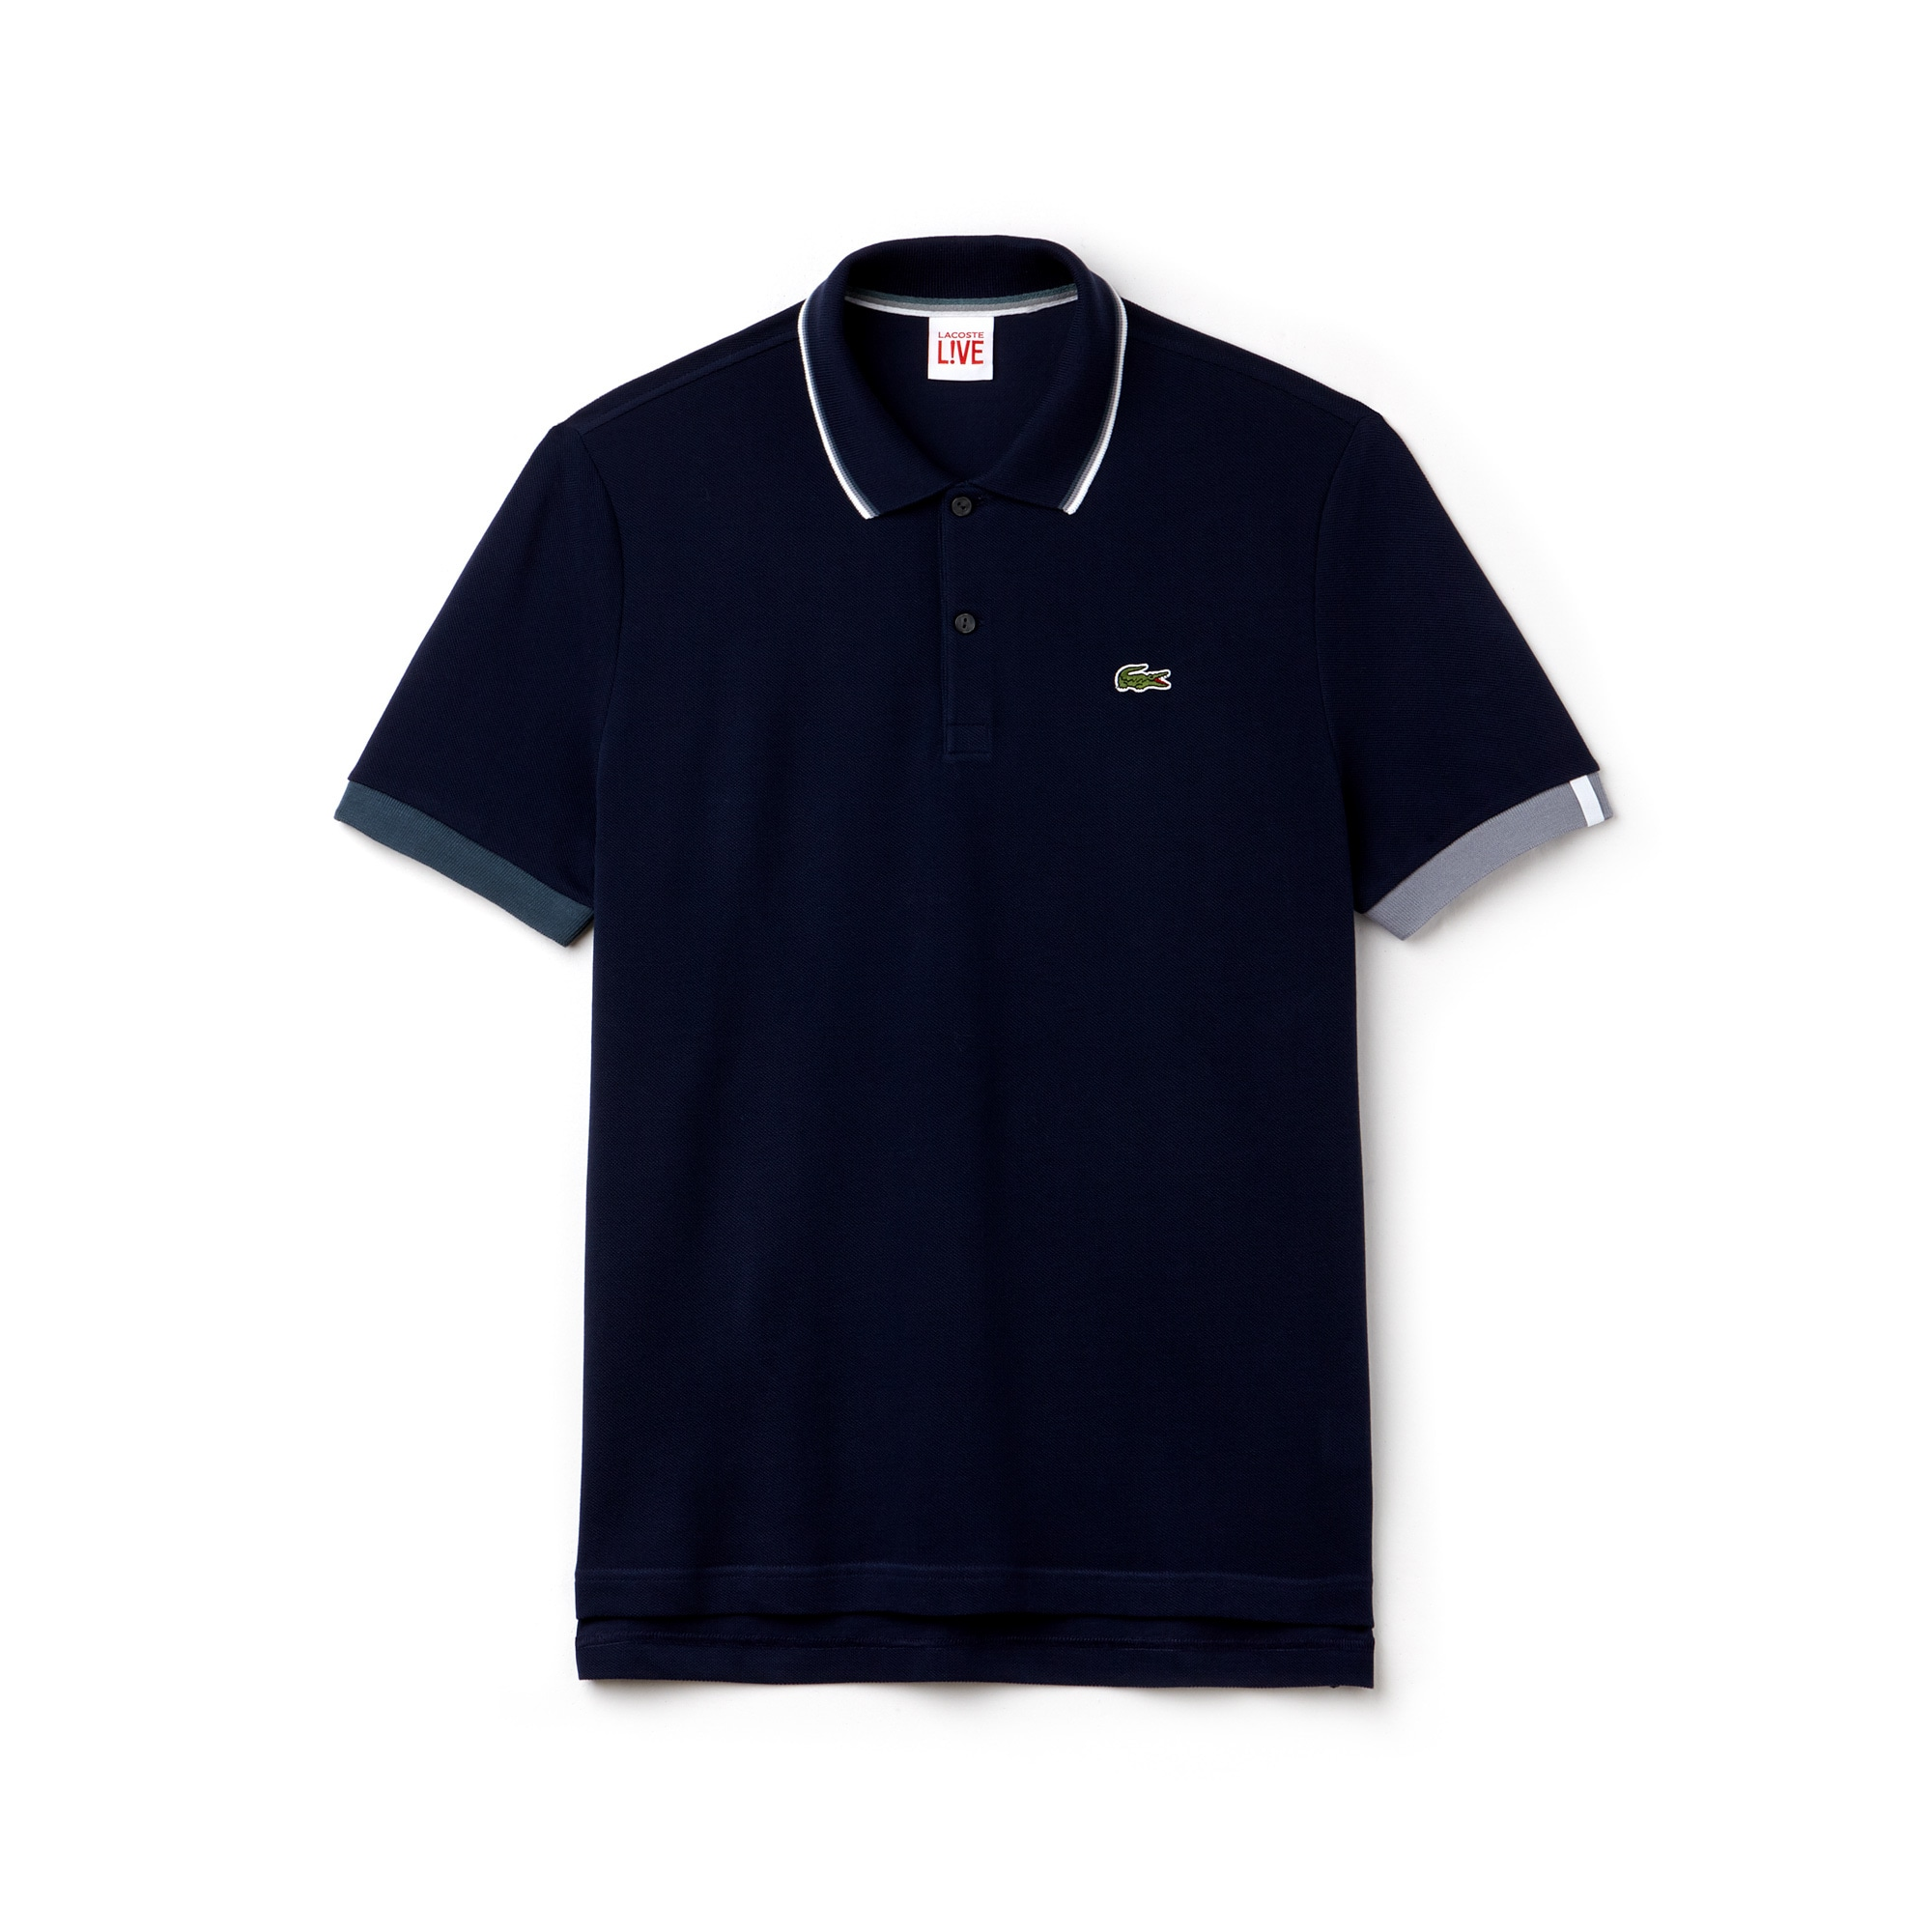 Polo slim fit Lacoste LIVE in petit piqué con bordino sul collo